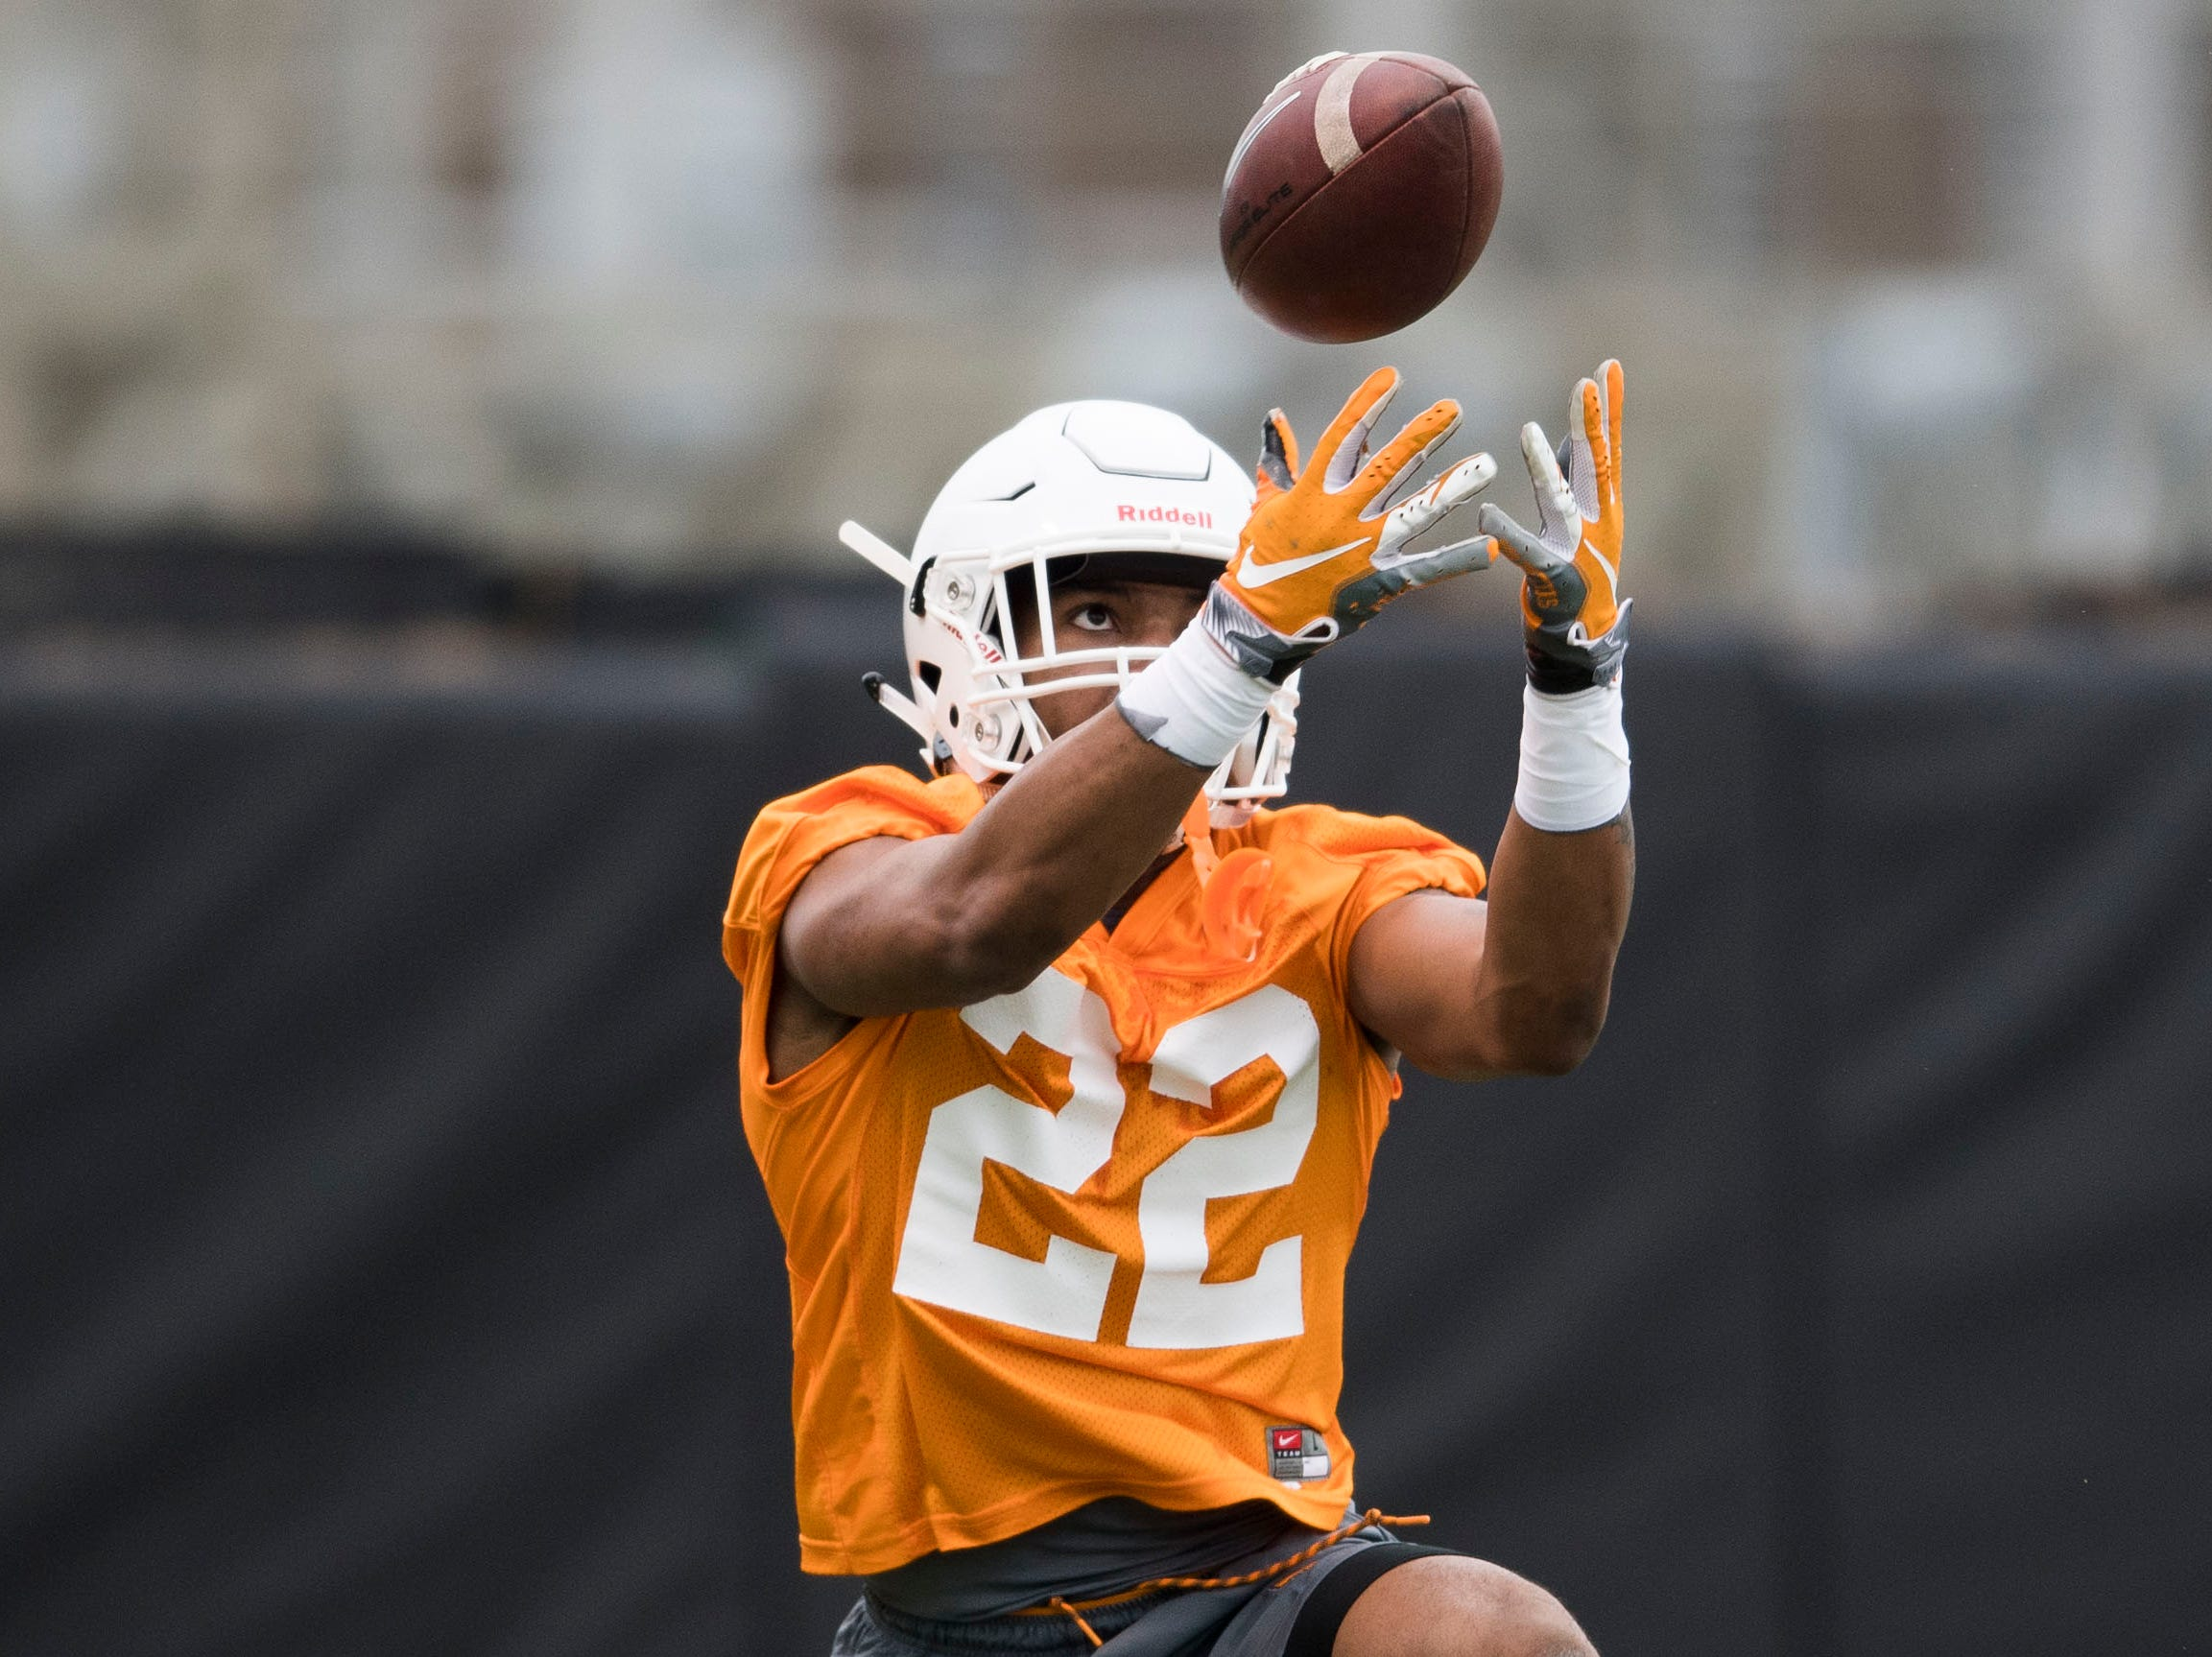 Tennessee's Jaylen McCollough (22) participates in a drill during Tennessee football's first practice of the spring season at University of Tennessee Thursday, March 7, 2019.